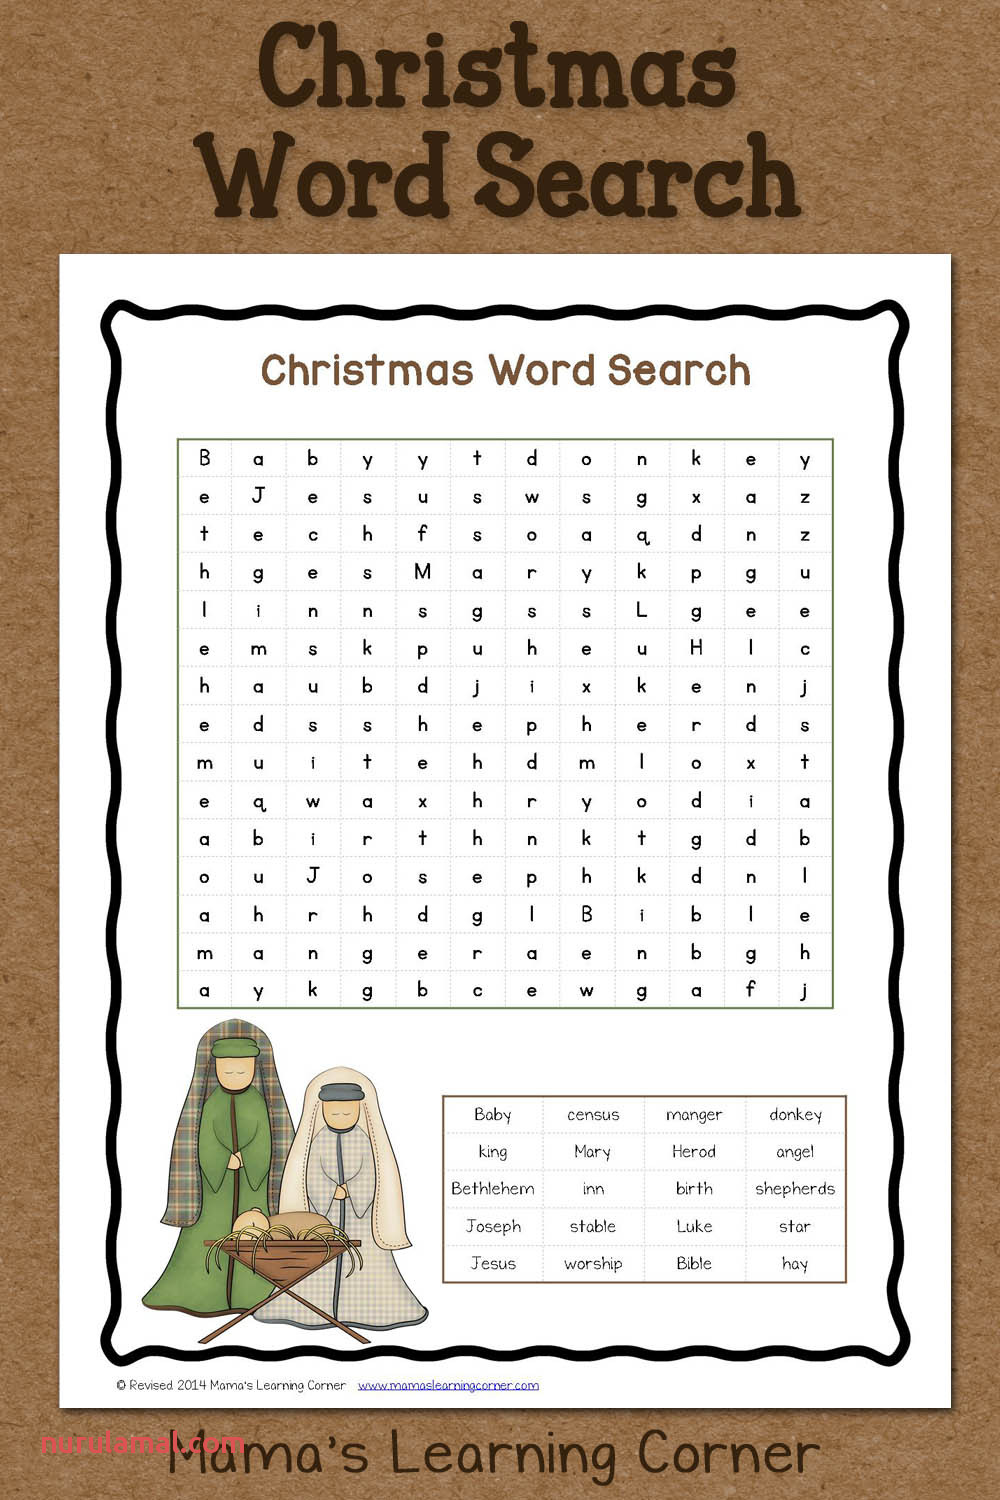 Christmas Word Search Free Printable Mamas Learning Corner